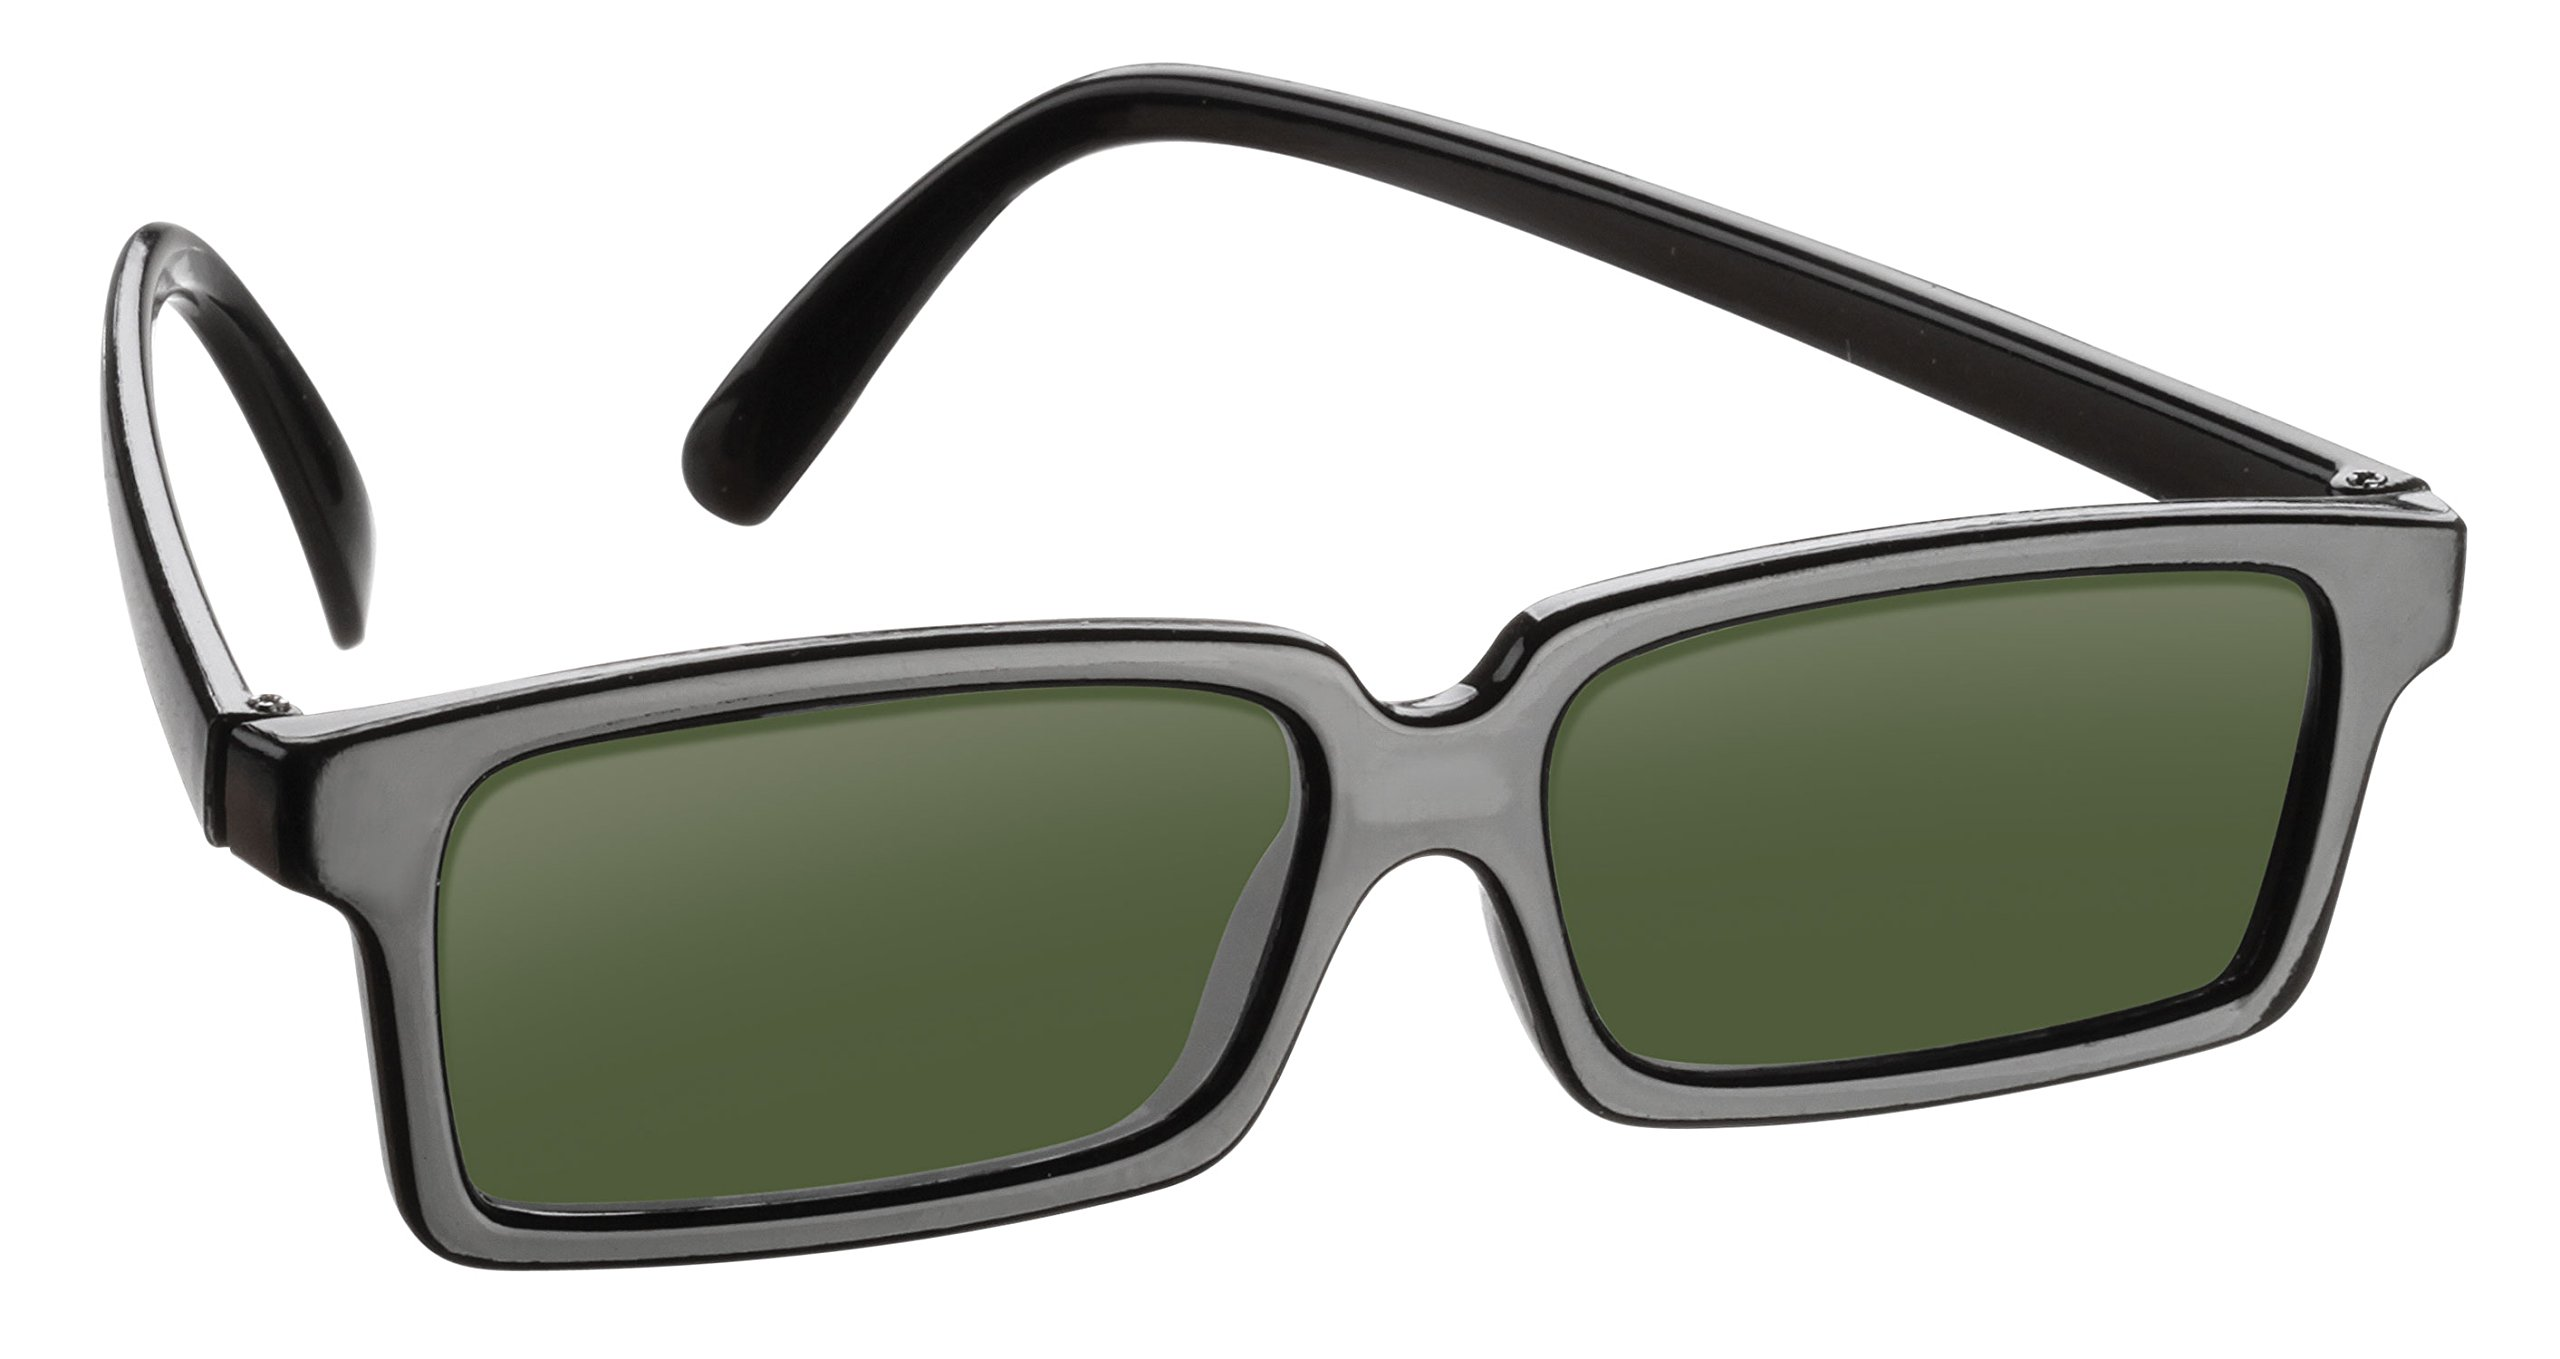 promo code really cheap authentic Cheap Spy Sunglasses Canada, find Spy Sunglasses Canada ...